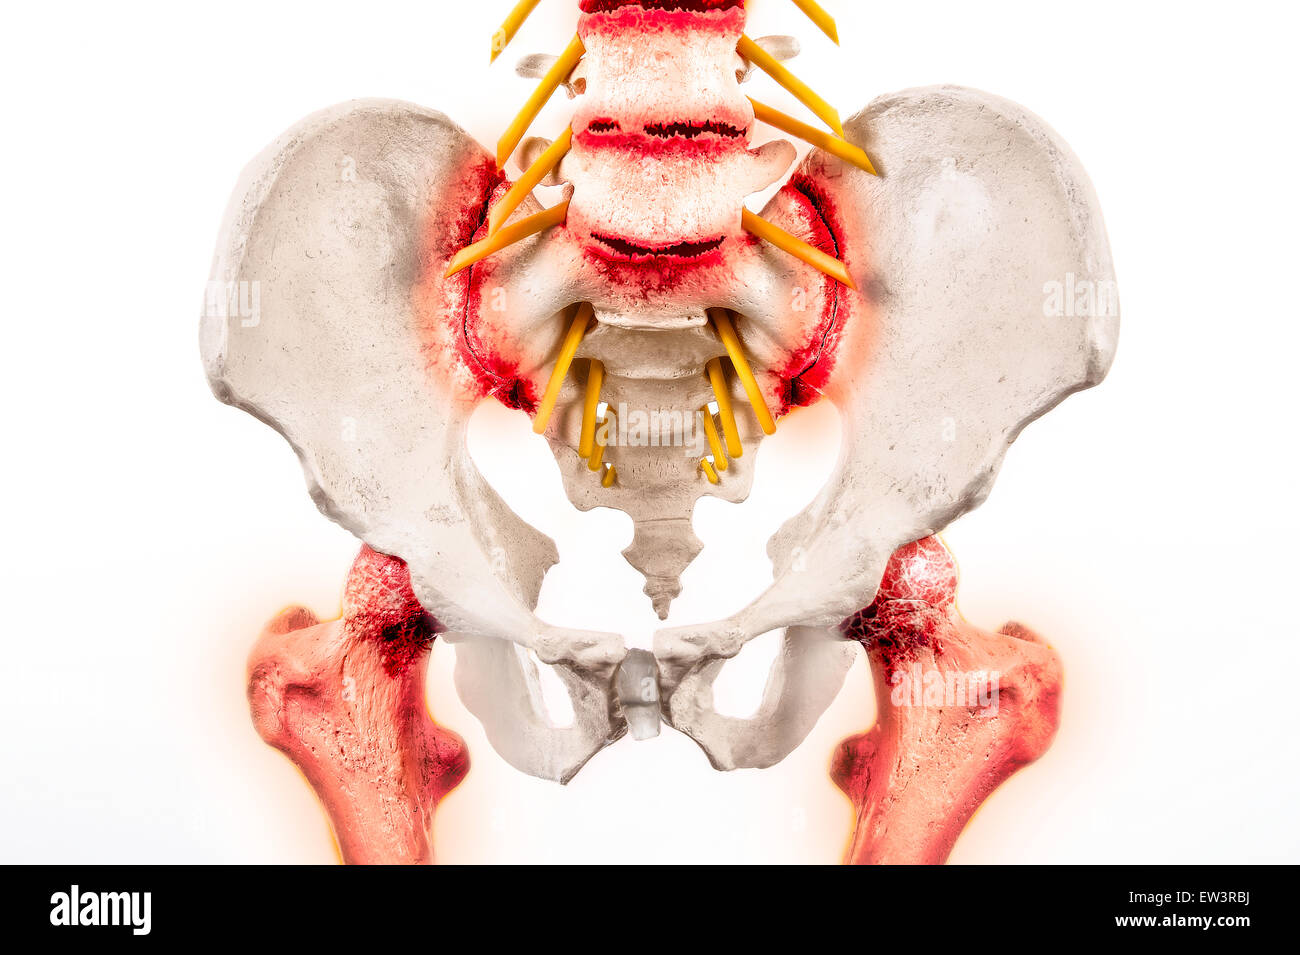 Illustrative graphic of Ankylosing Spondylitis - a degenerative form of arthritis affecting the spineand sacroiliac - Stock Image